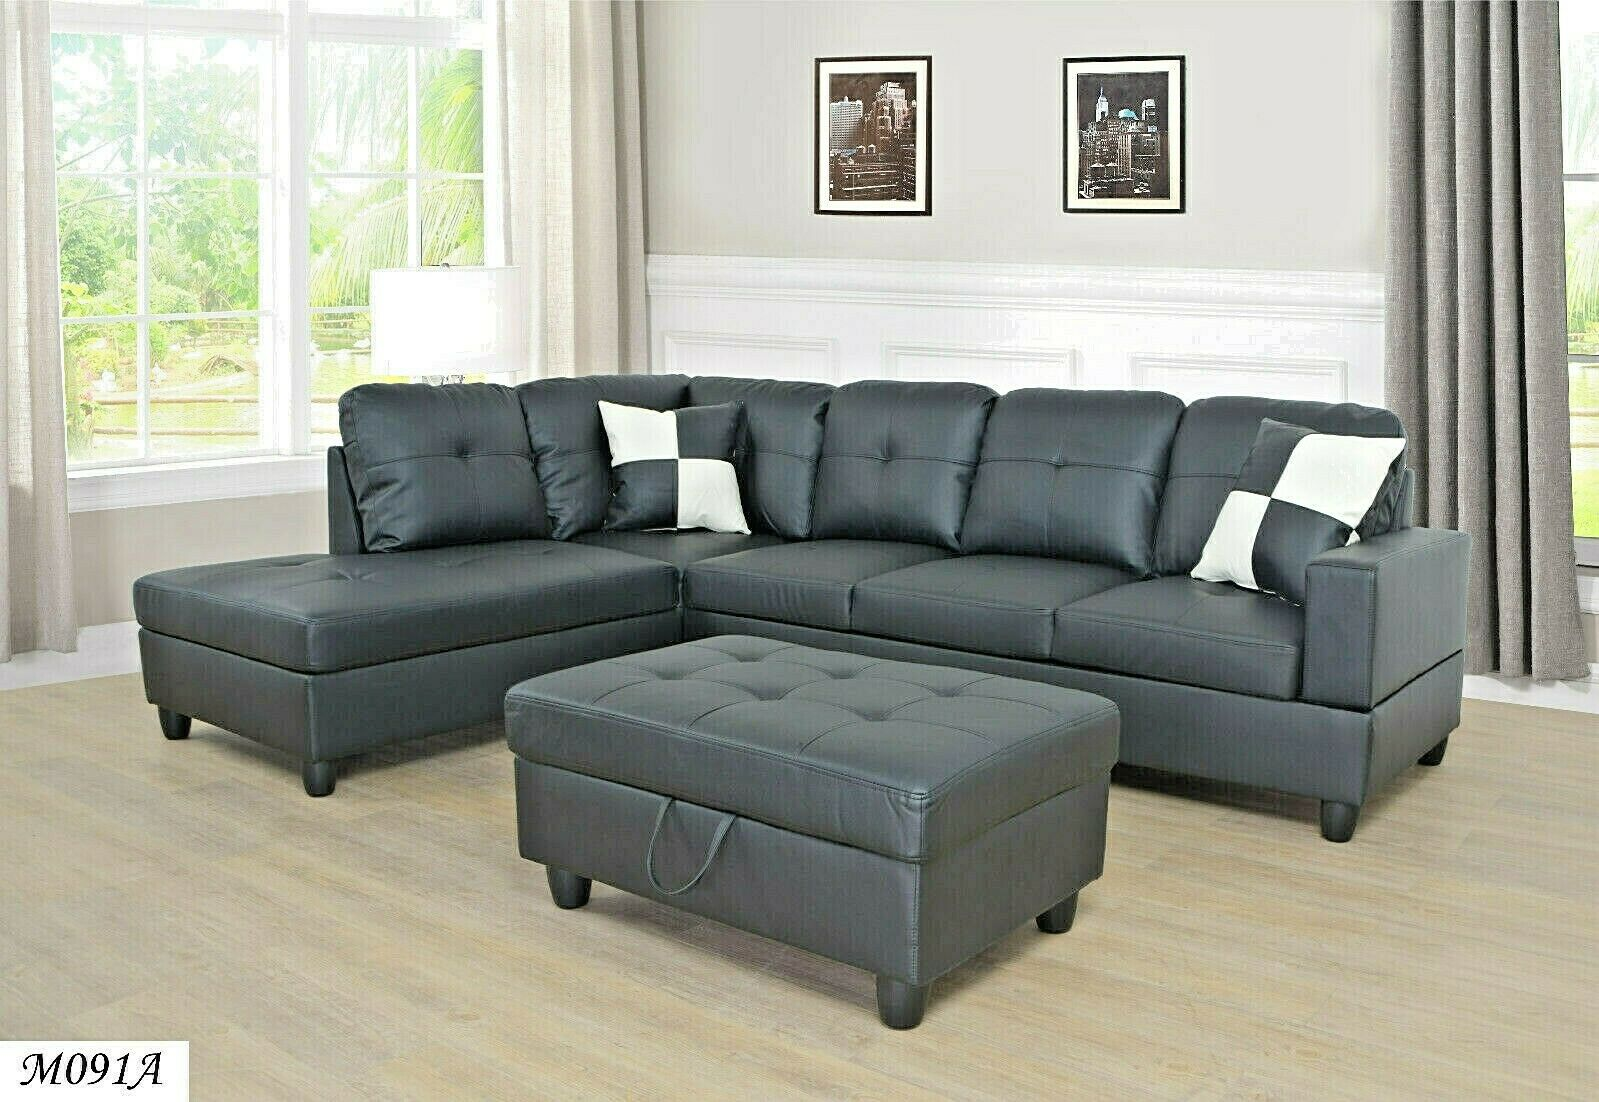 3 Piece,Black Color Faux Leather Right-Facing Sectional Sofa Set with ...